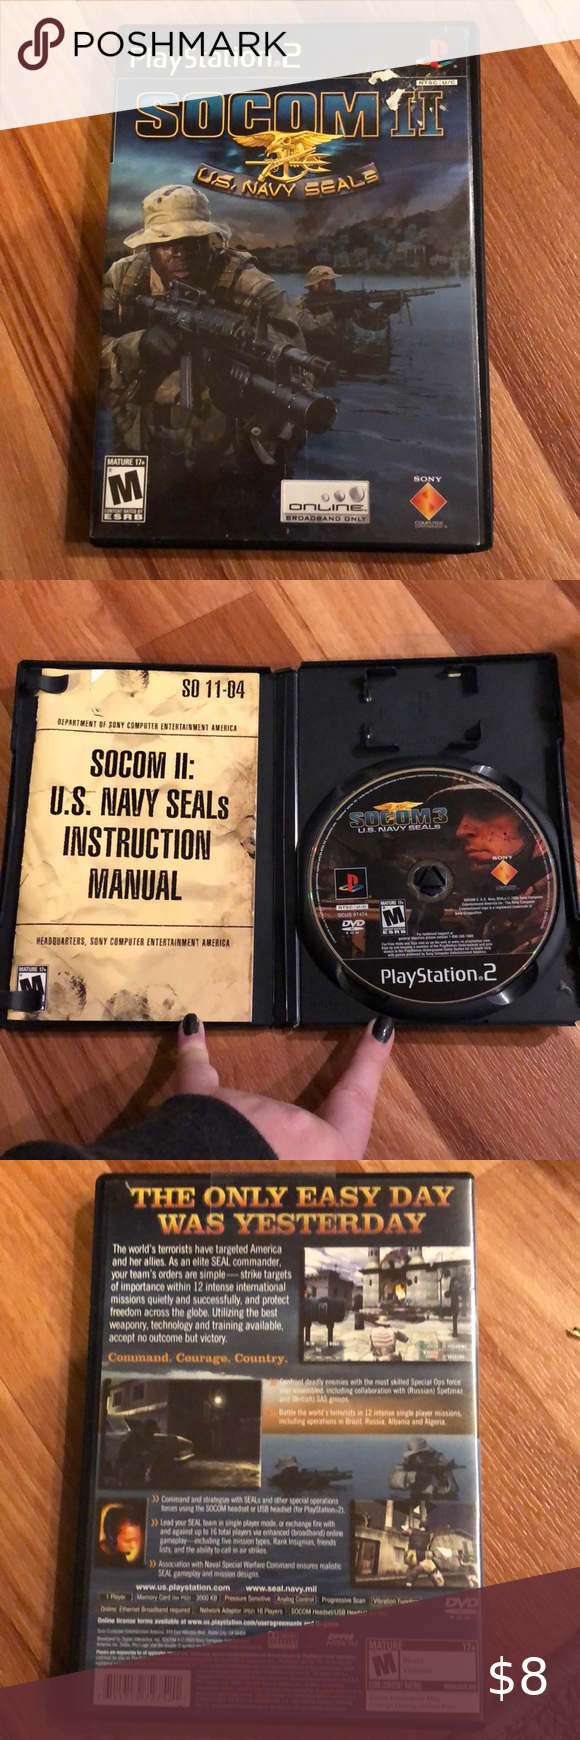 Used II US Navy Seals PS2 Game in 2020 First